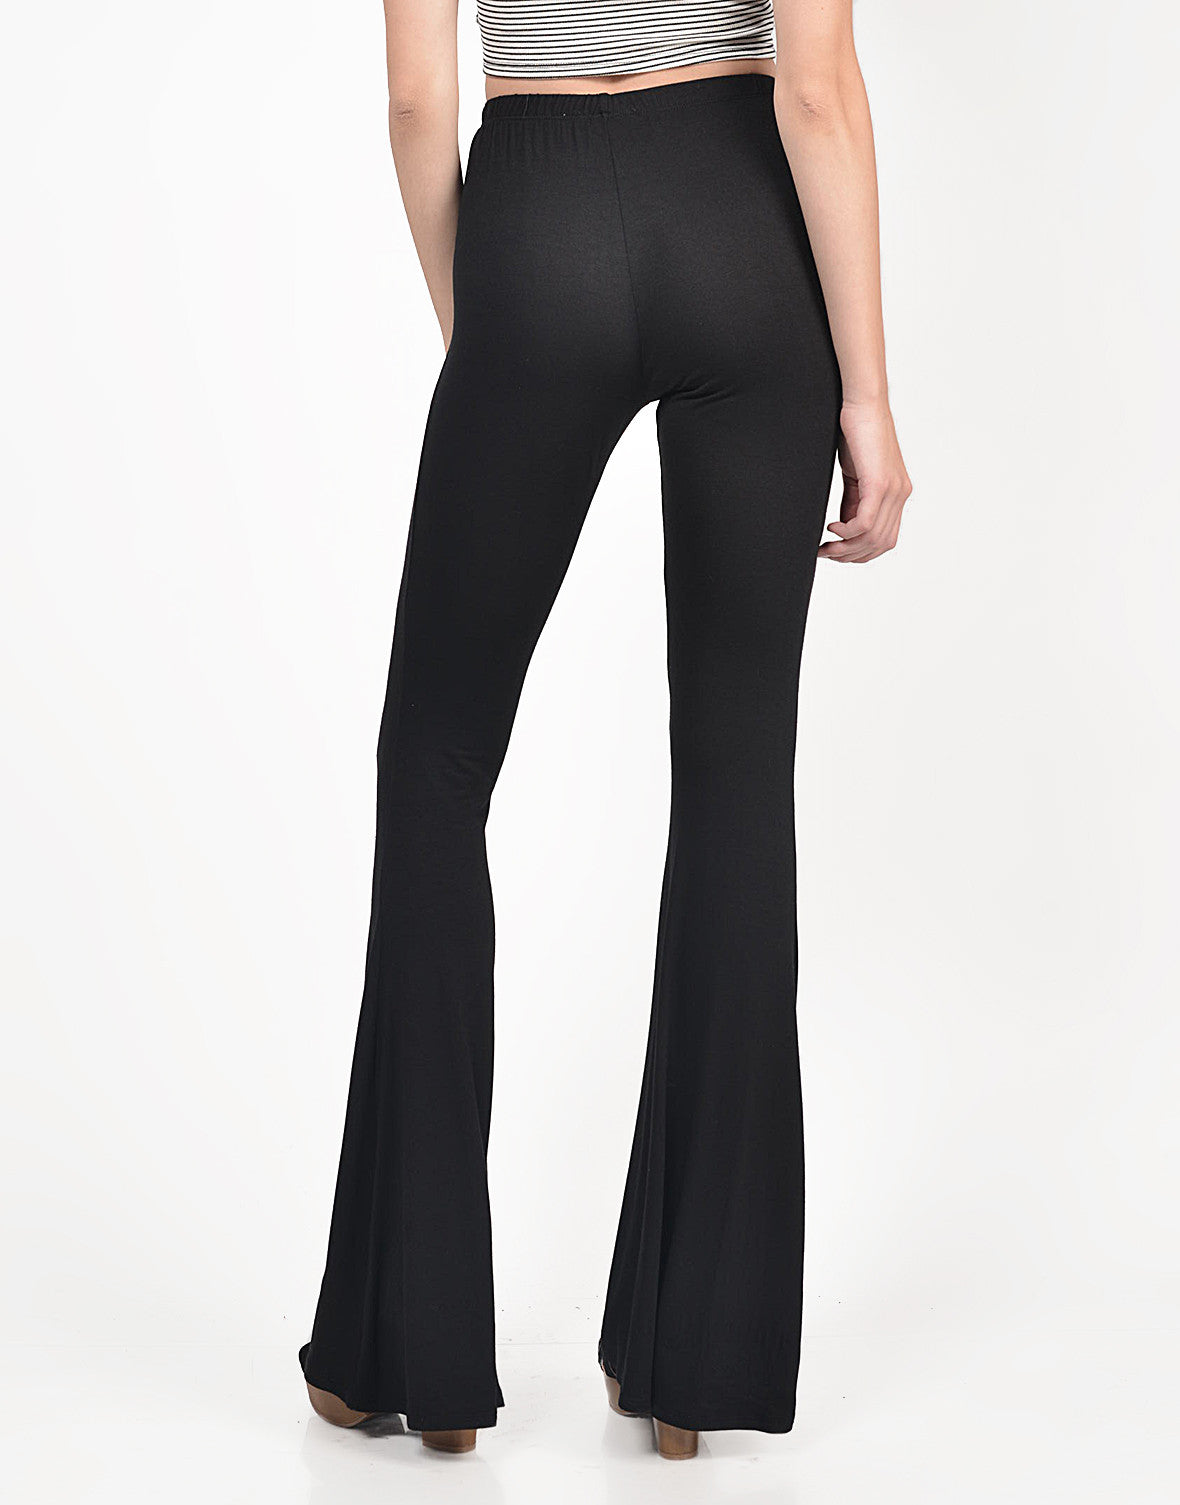 Back View of Everyday Flared Pants